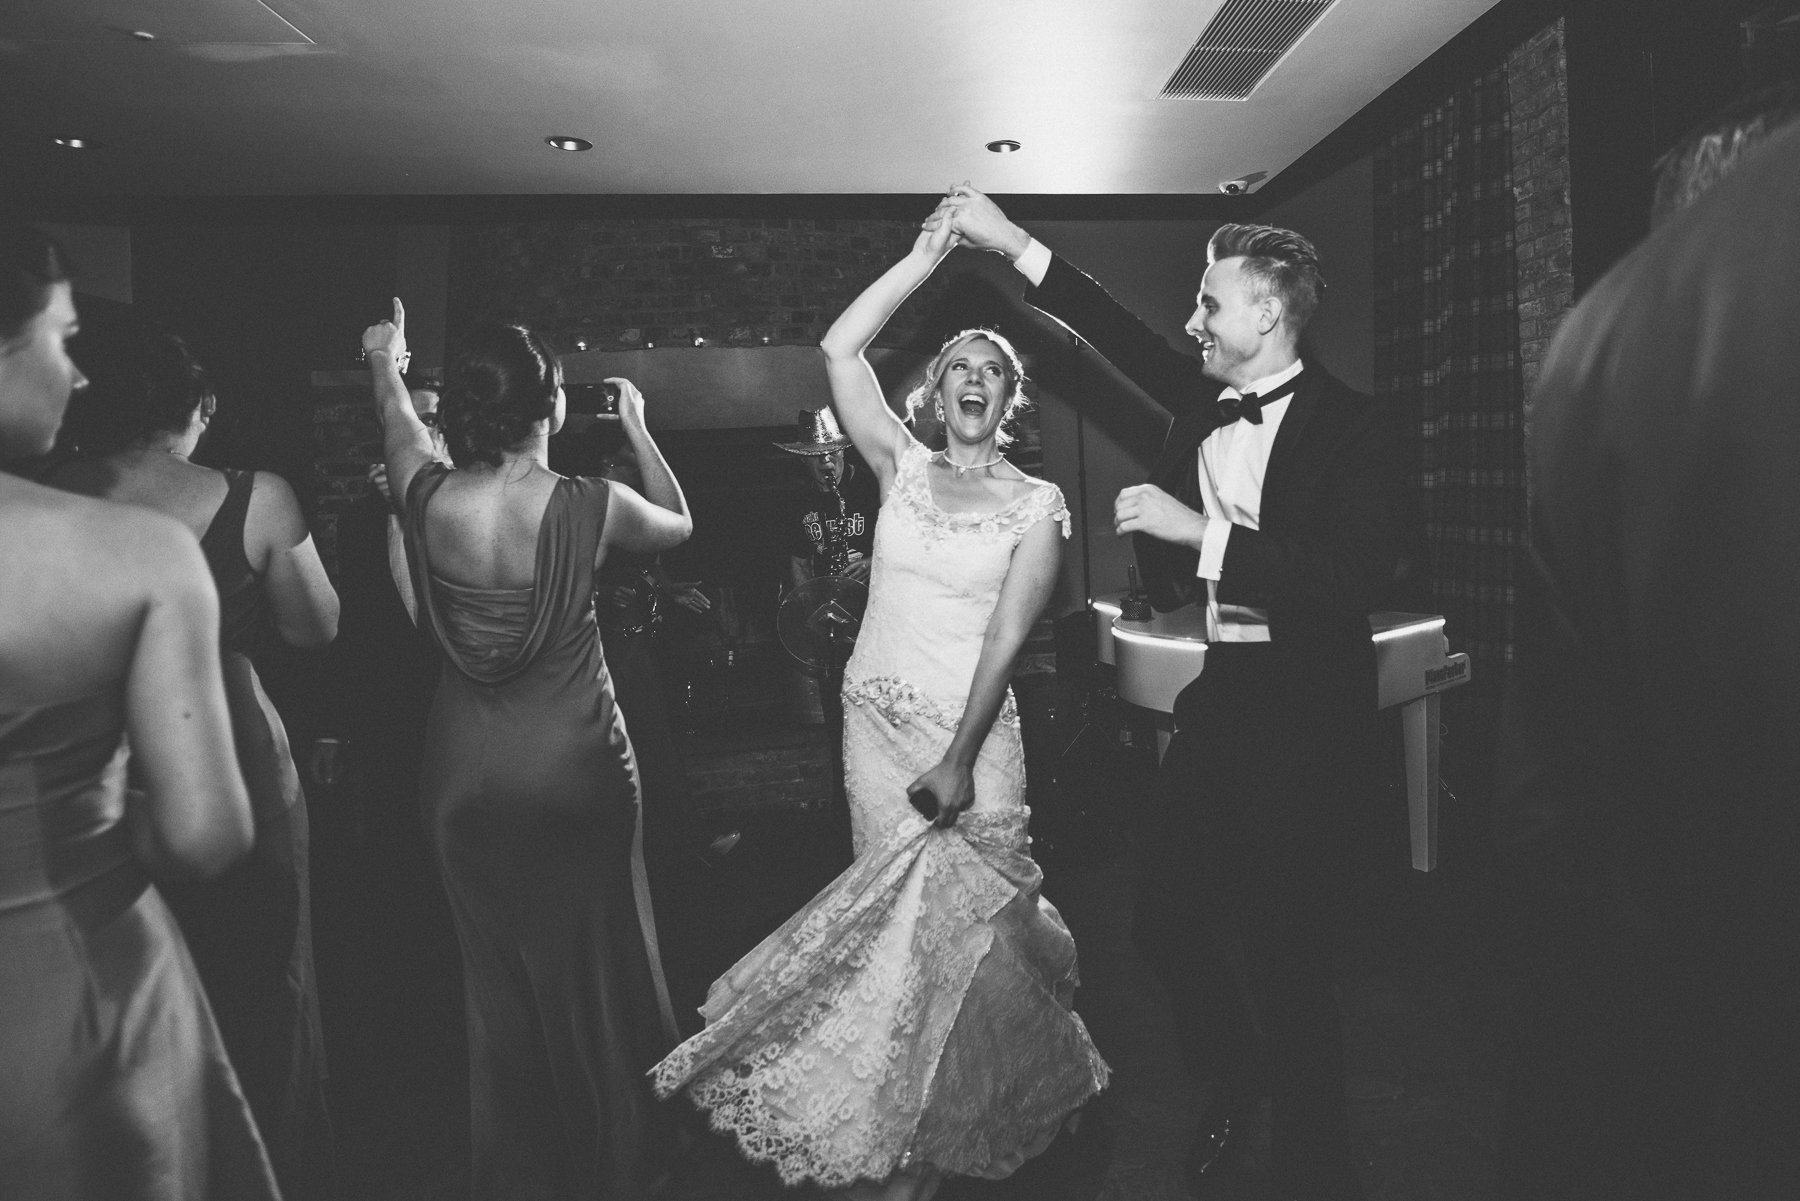 Bride in a lace fishtail dress being spun around on the dance floor